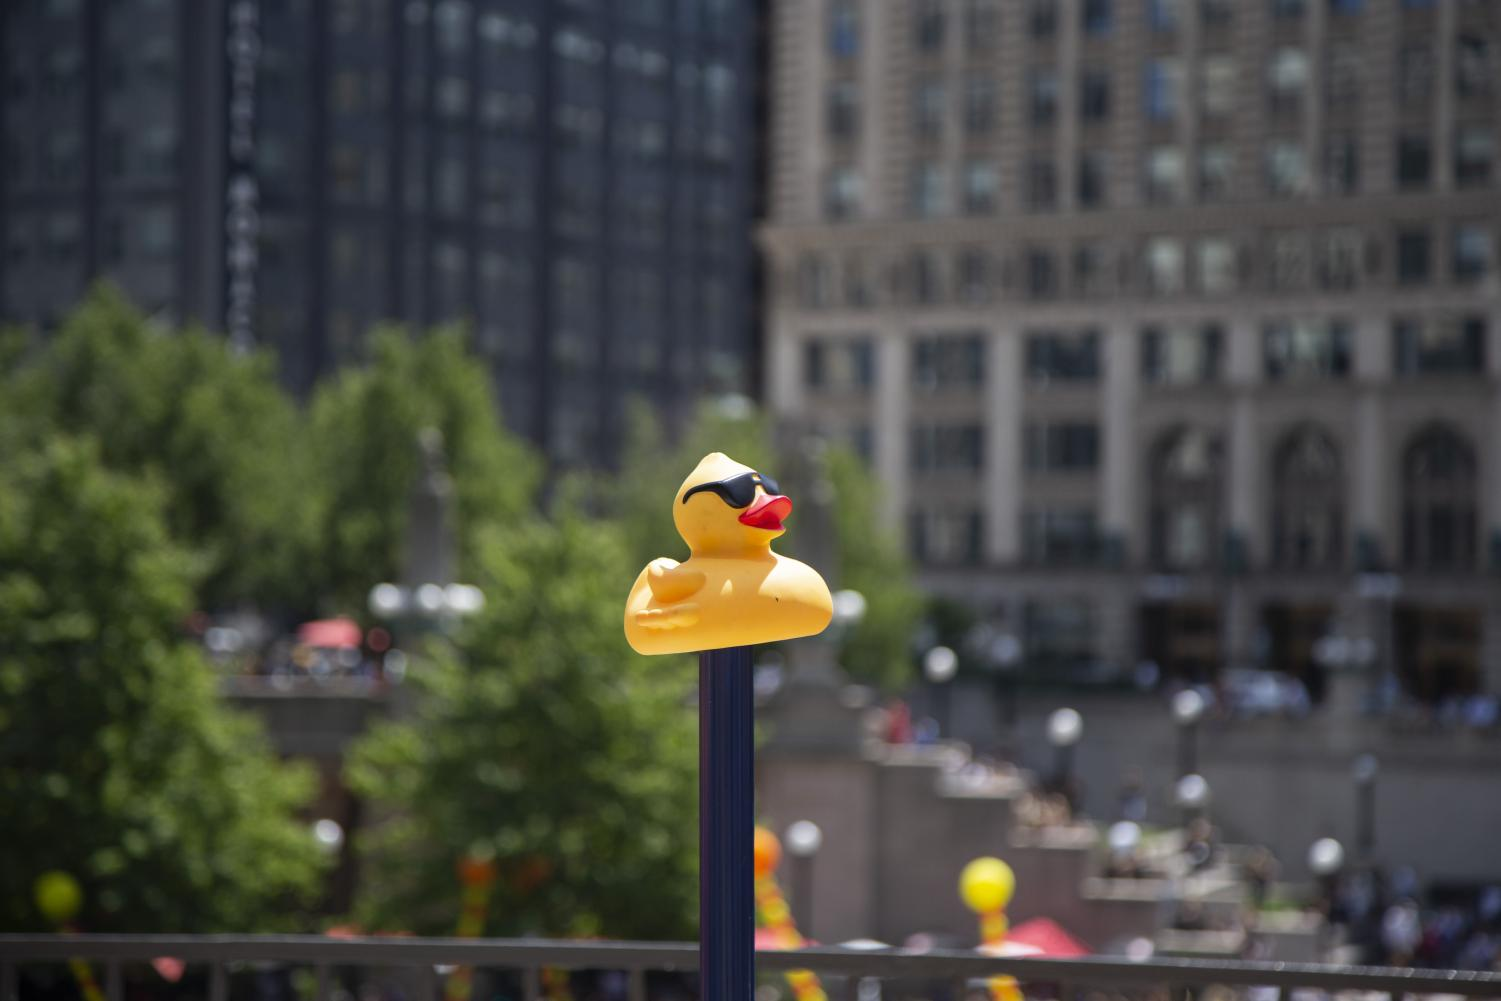 Chicago+held+its+14th+annual+Ducky+Derby+charity+event+Thursday%2C+Aug.+8%2C+at+the+Chicago+Riverwalk.+